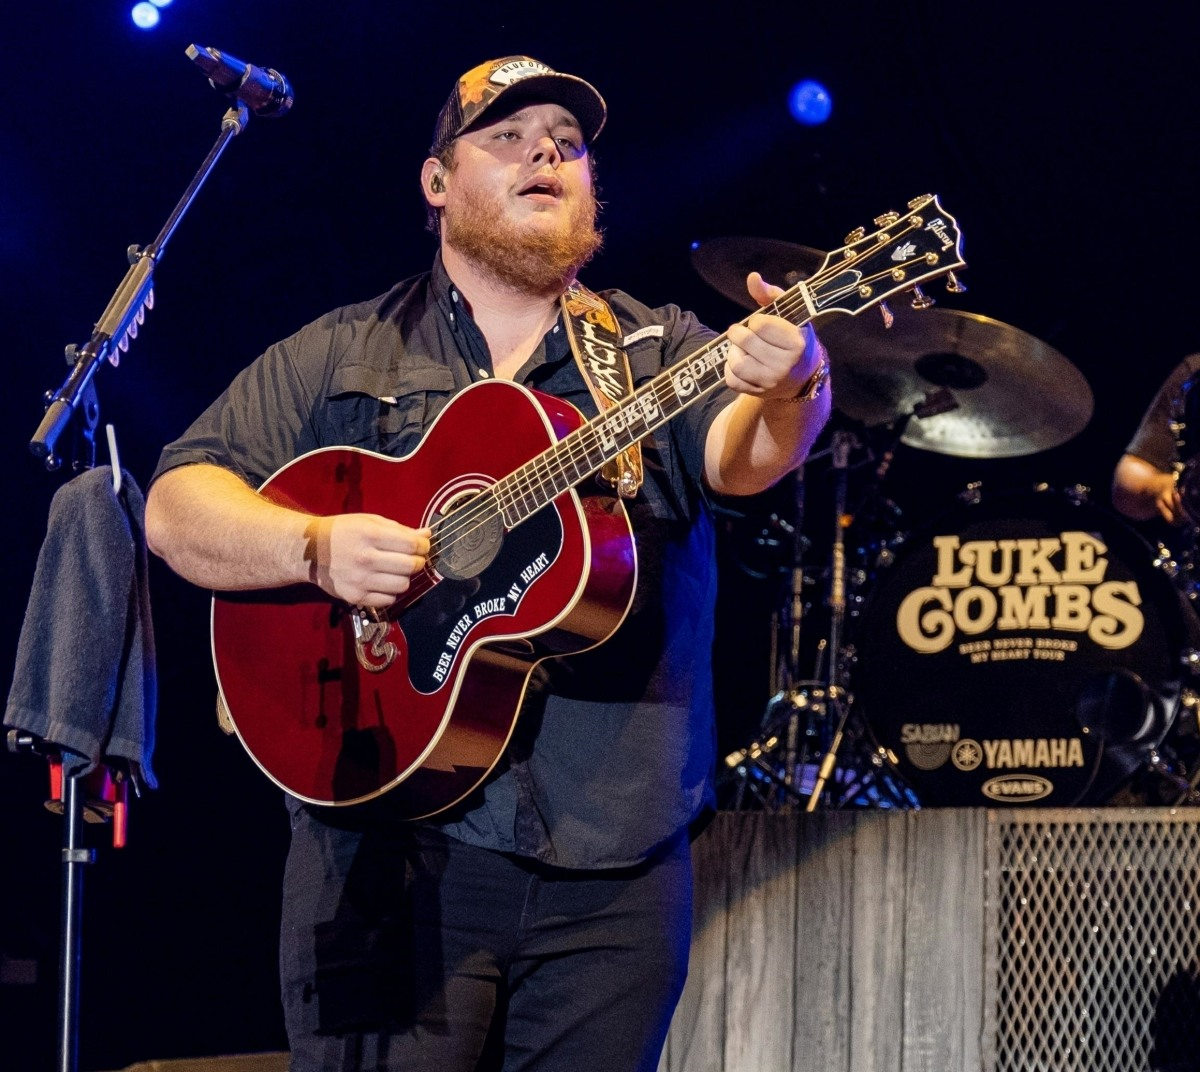 Luke Combs performing live at the Country Thunder Music Festival